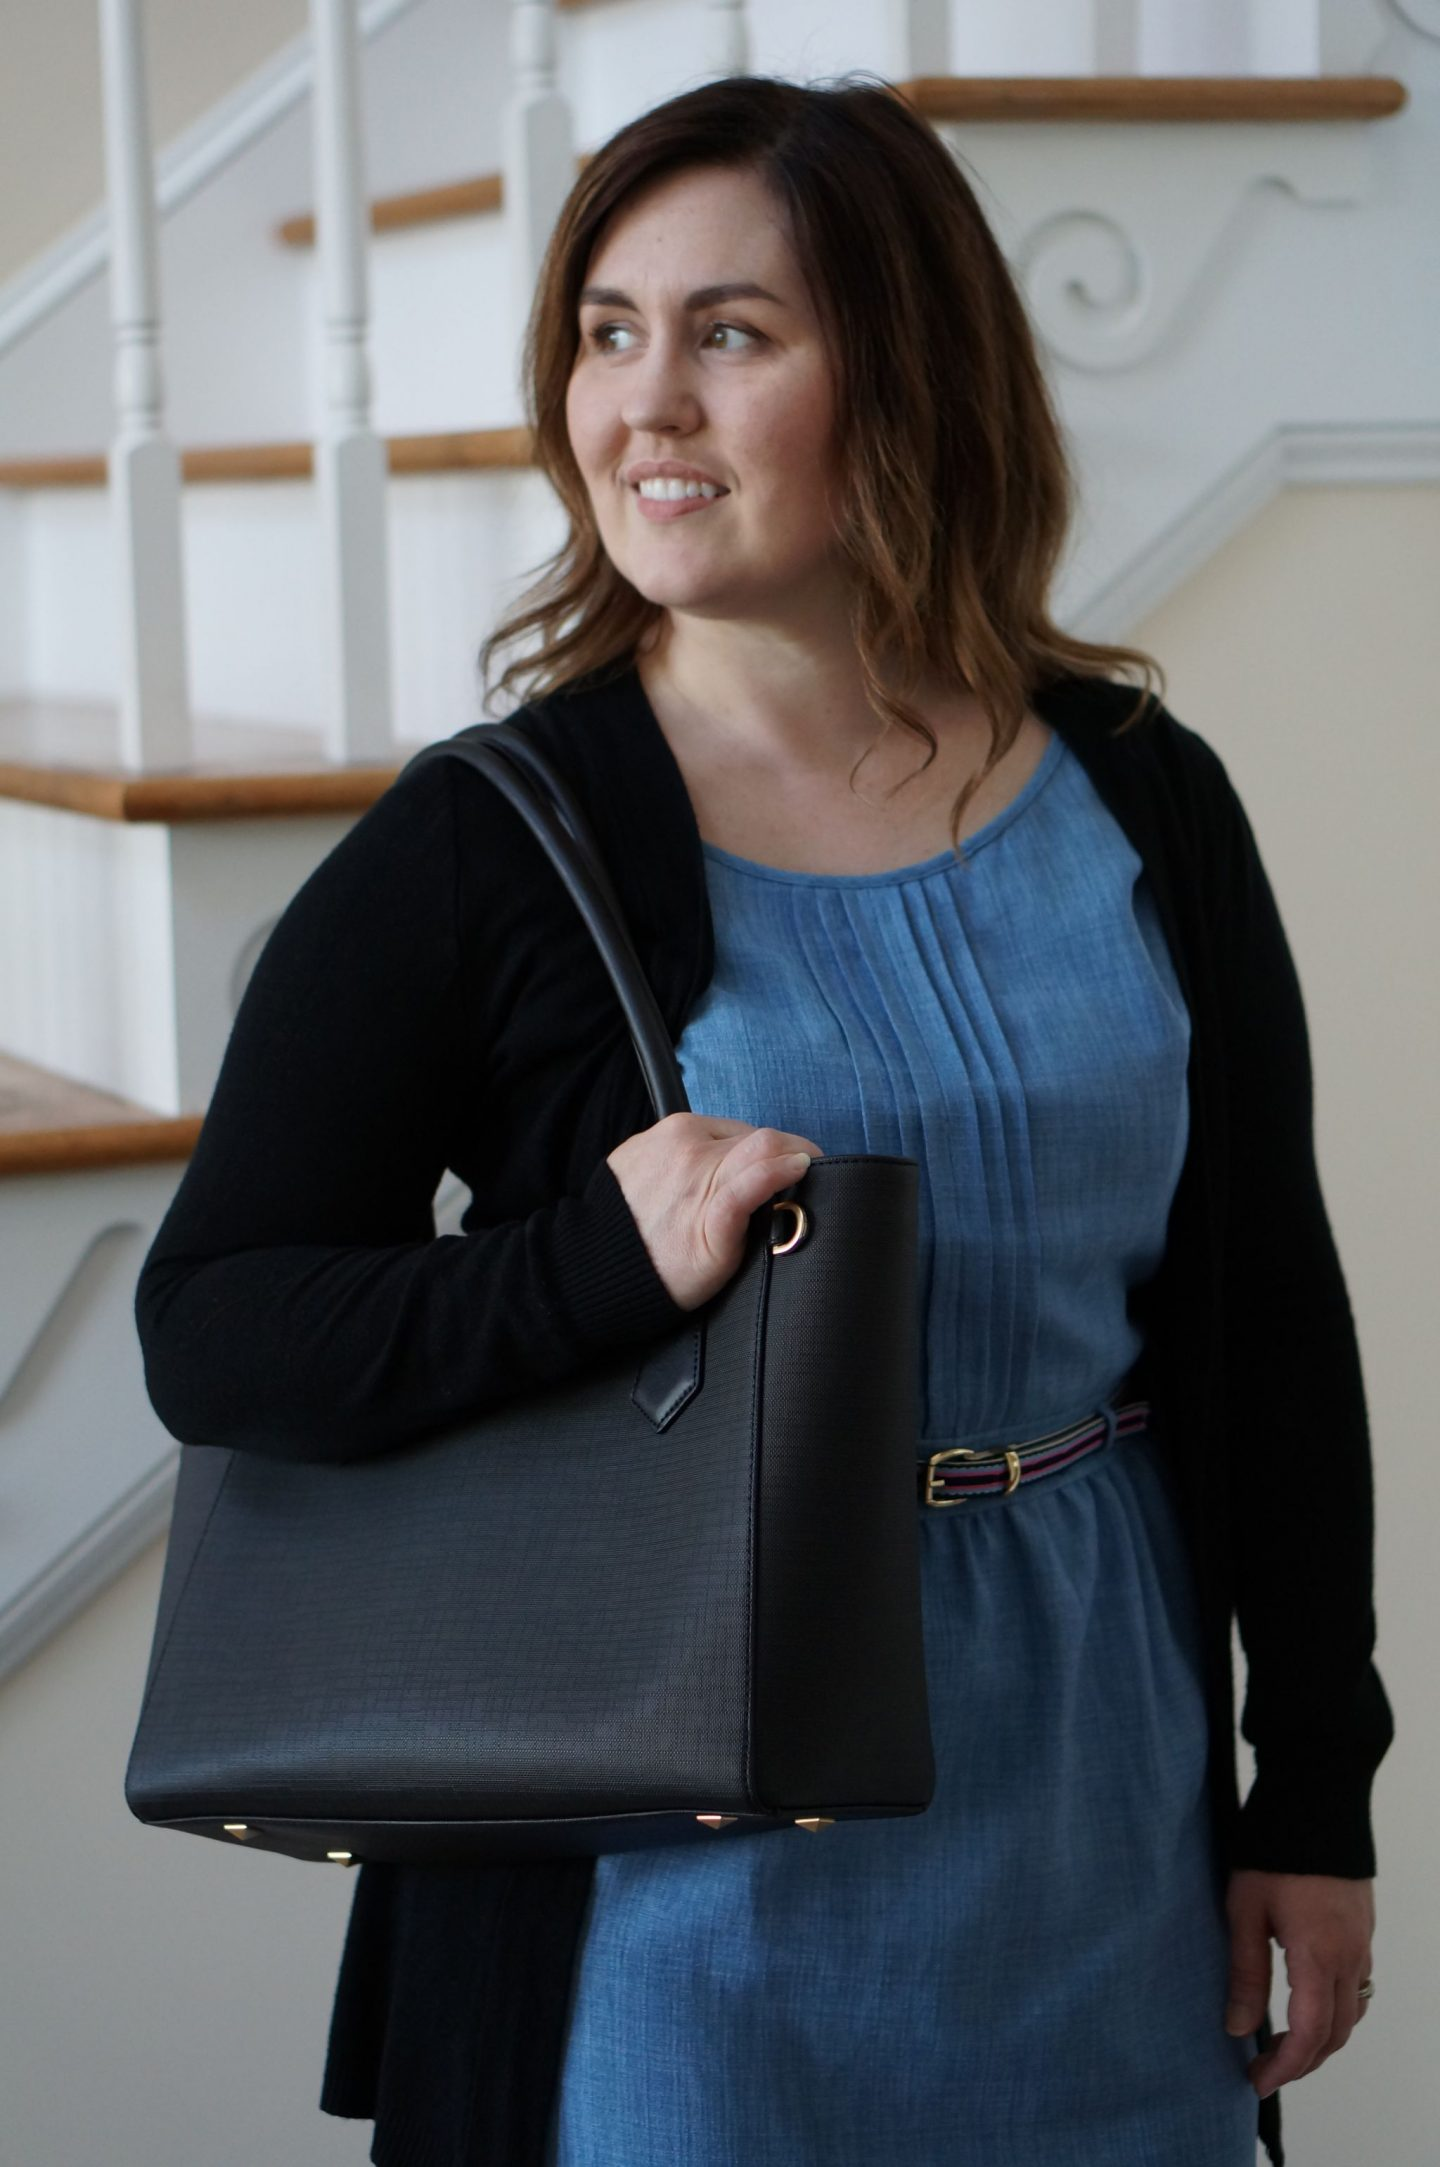 Popular North Carolina style blogger Rebecca Lately shares her new work tote from Dagne Dover. Click here to read about the Dagne Dover Classic Tote!